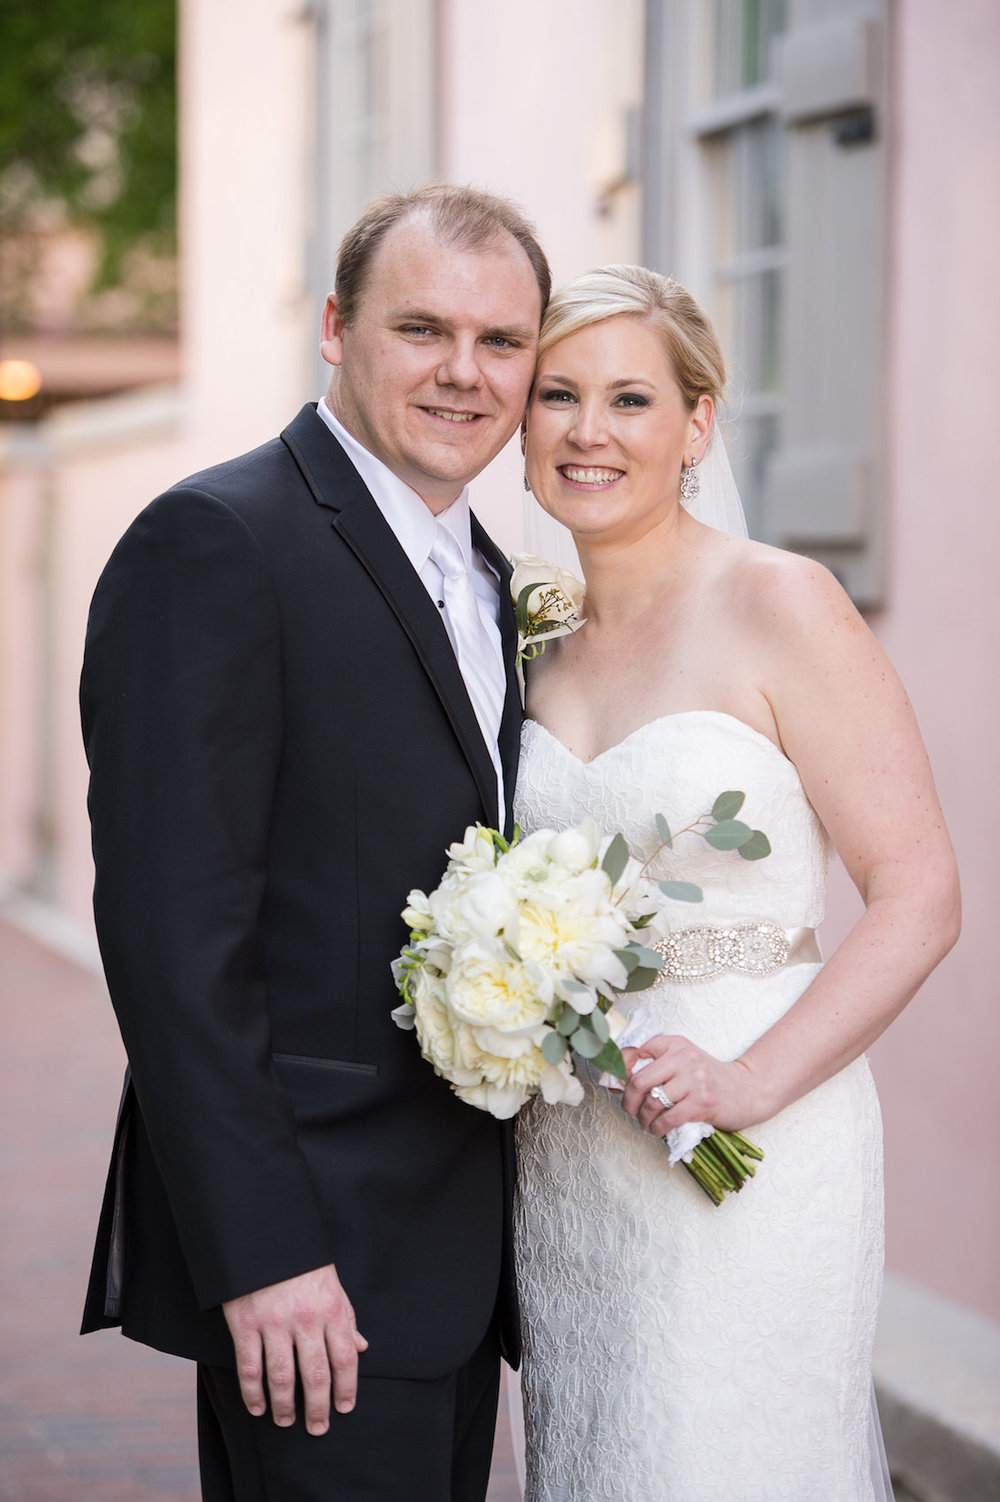 Sweet Bride and Groom Portrait from an Elegant Summer Wedding in Florida / Séverine Photography